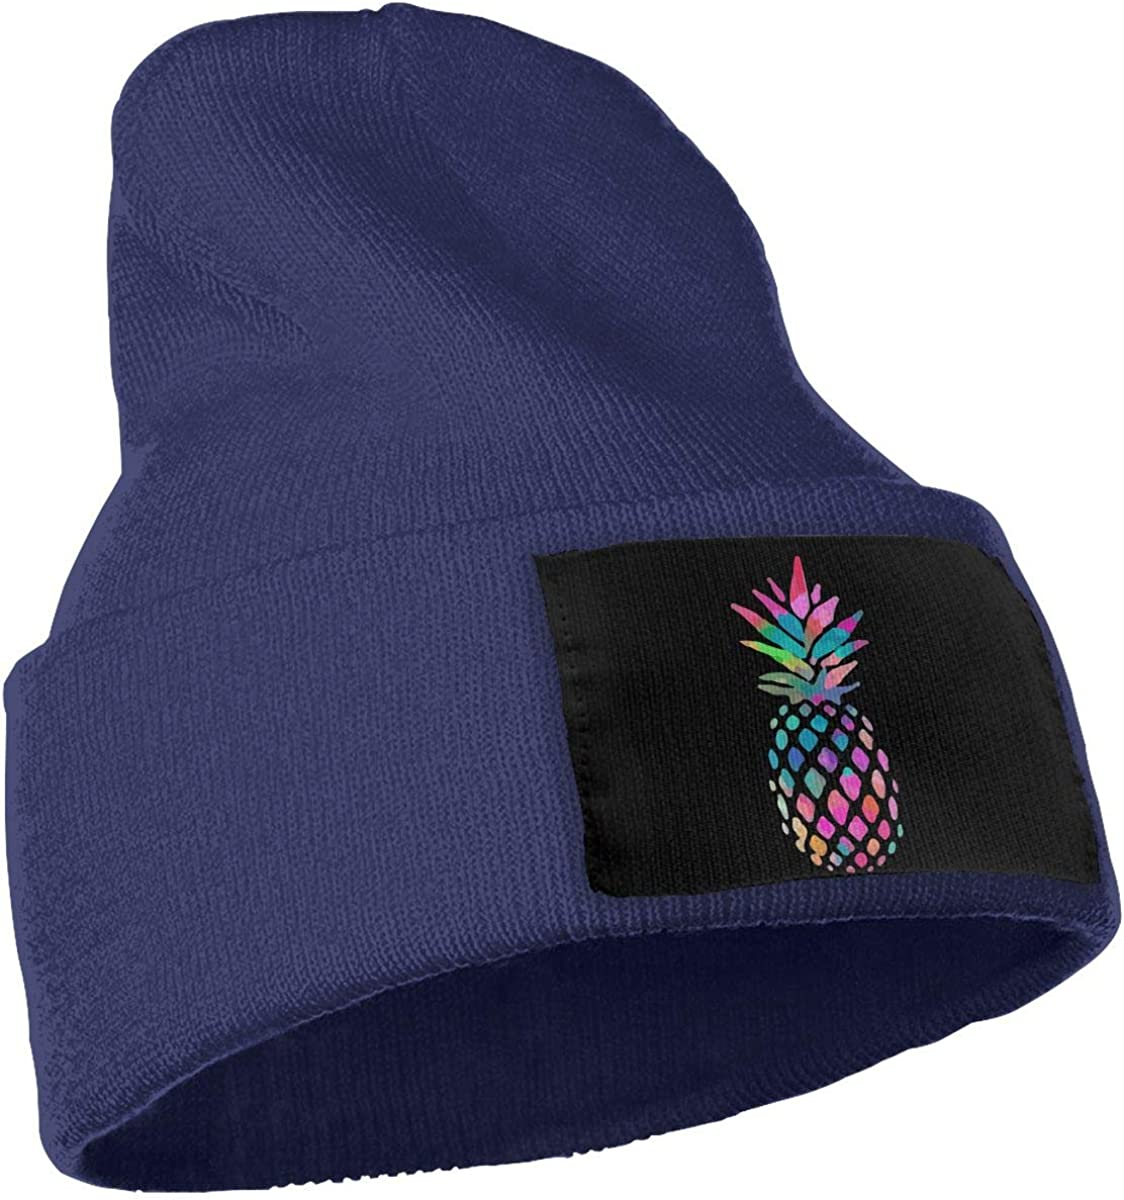 WHOO93@Y Mens and Womens 100/% Acrylic Knit Hat Cap Watercolour Pineapple Soft Ski Cap